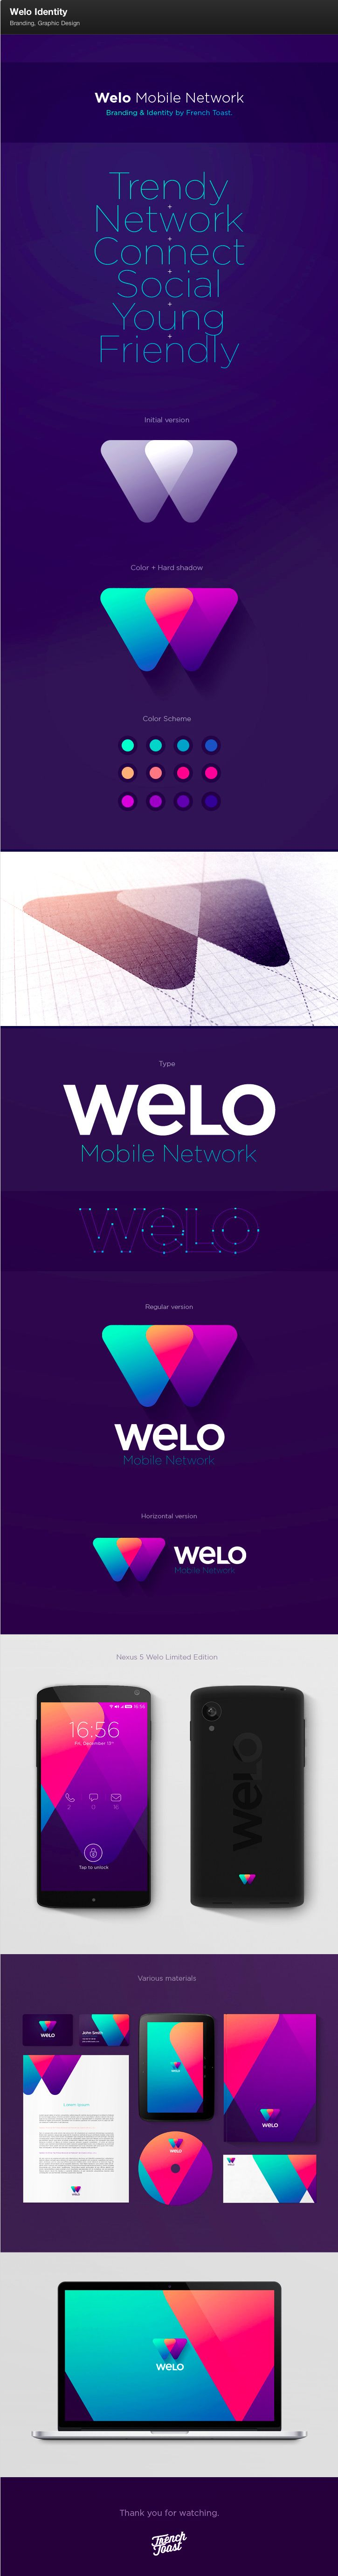 http://www.behance.net/frenchtoast welo / french toast creative / branding / brand identity / logo design